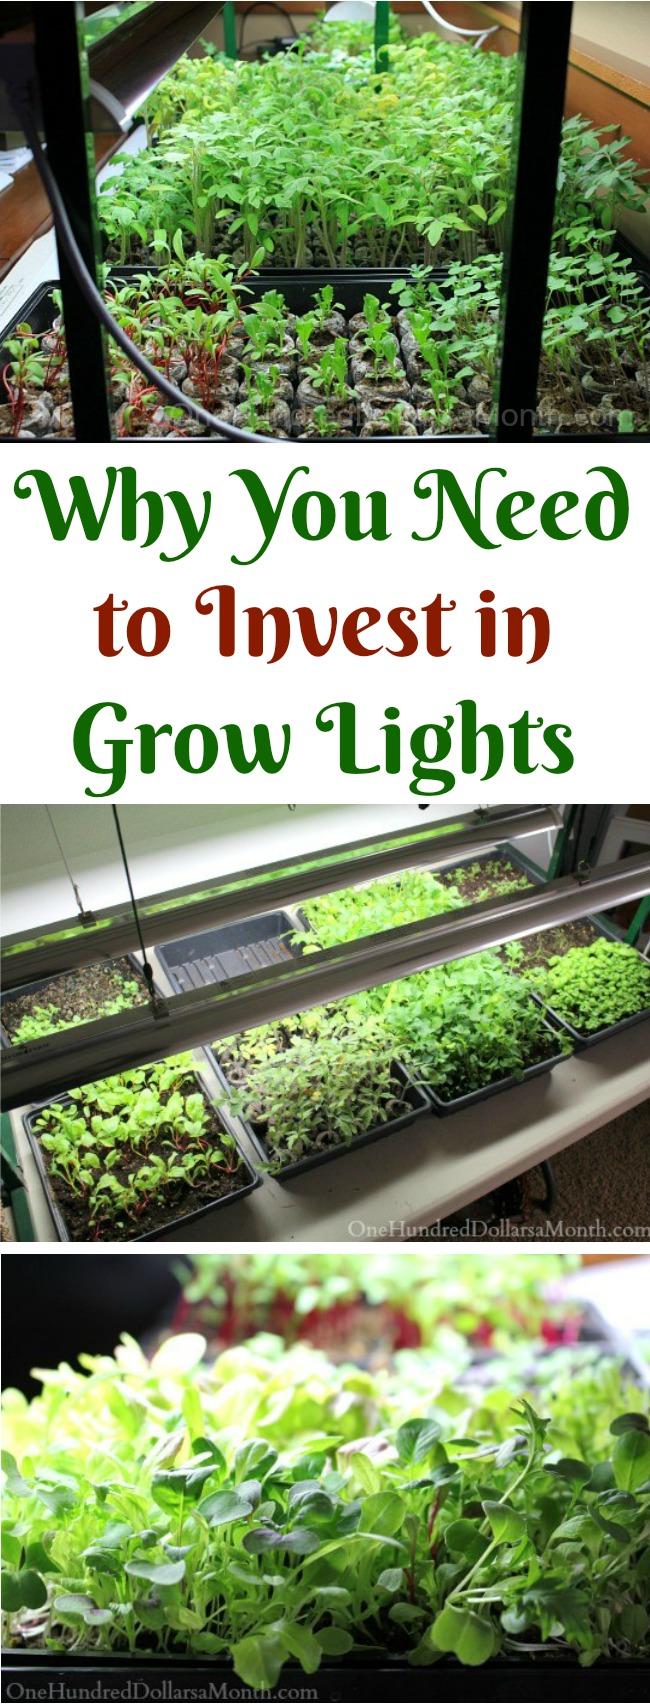 Why I Think You Should Invest in Grow Lights